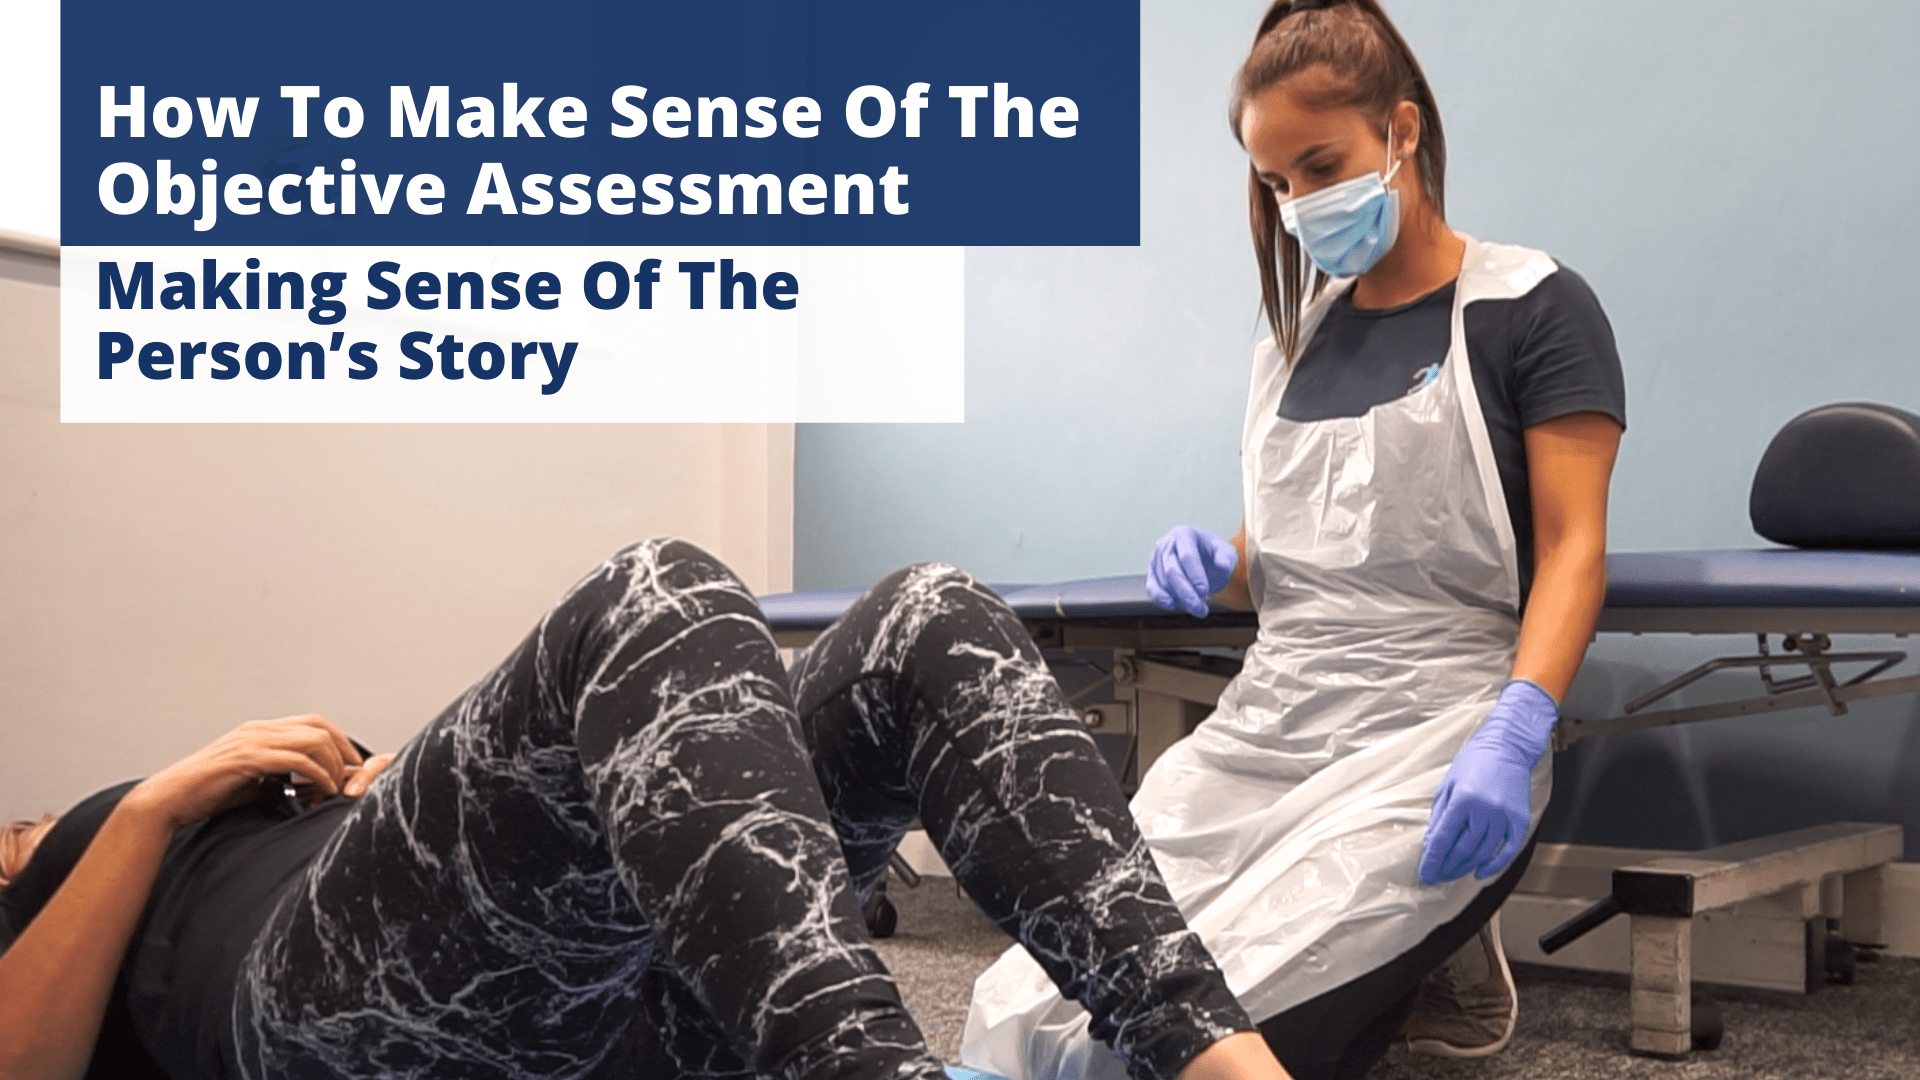 How To Make Sense Of The Objective Assessment